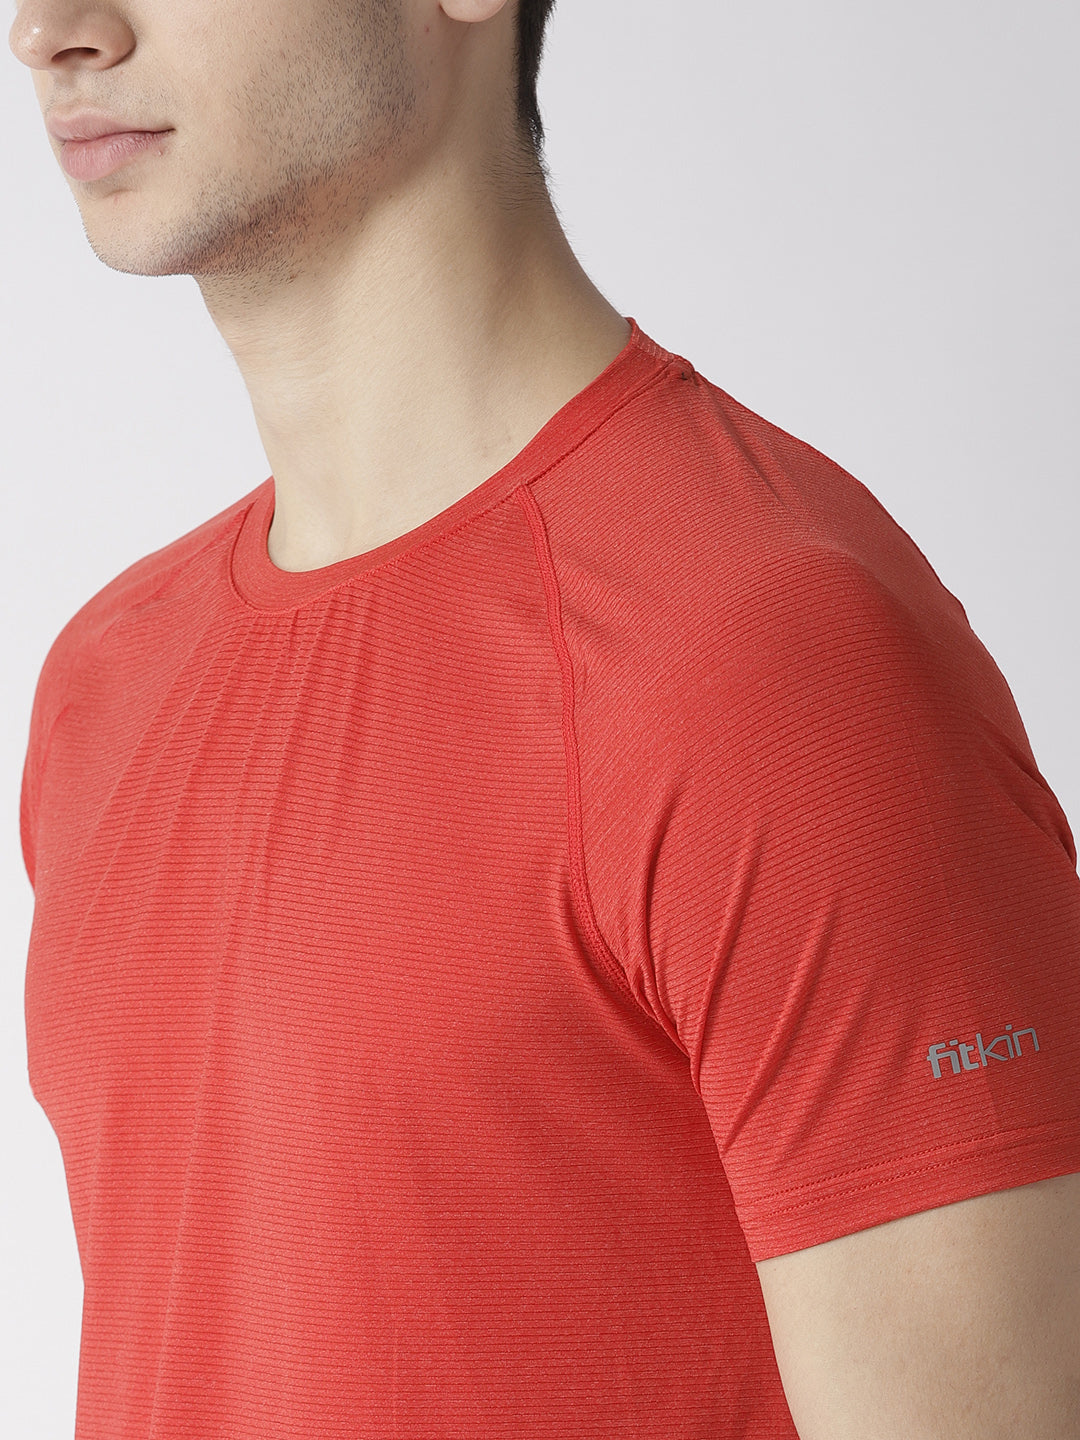 Men Red Self Striped T-shirt